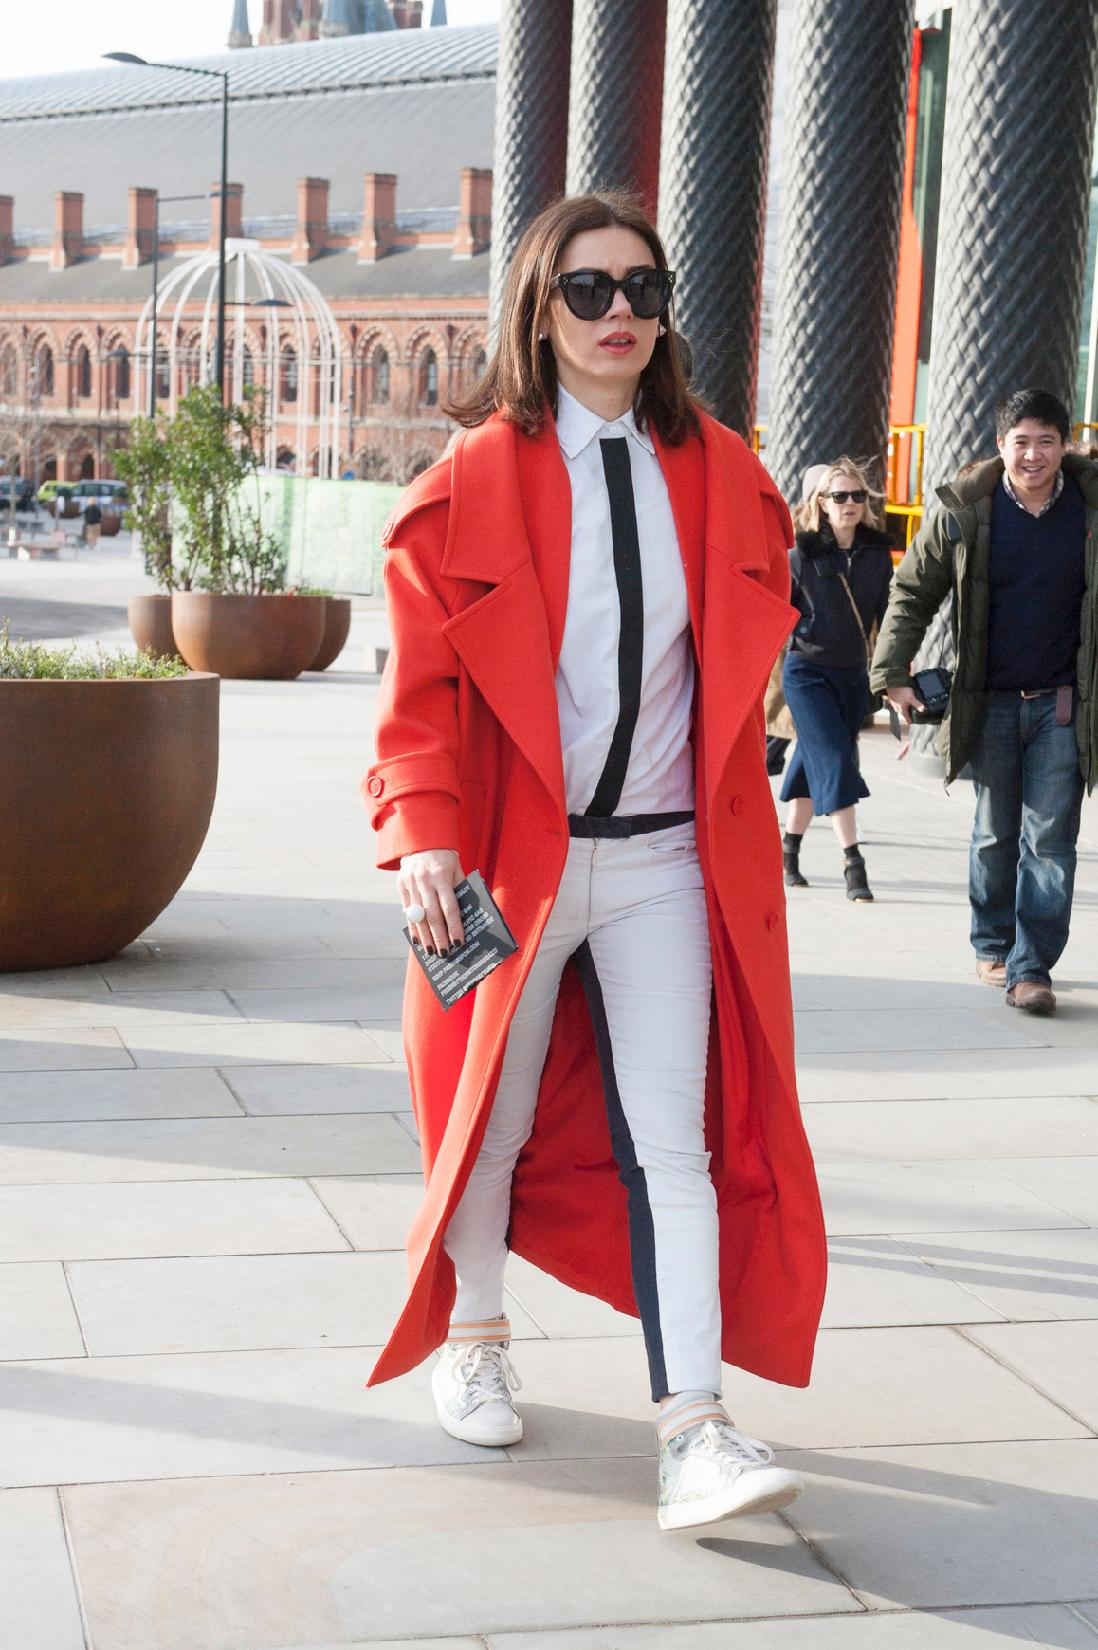 These winter coats aren't for the faint of heart